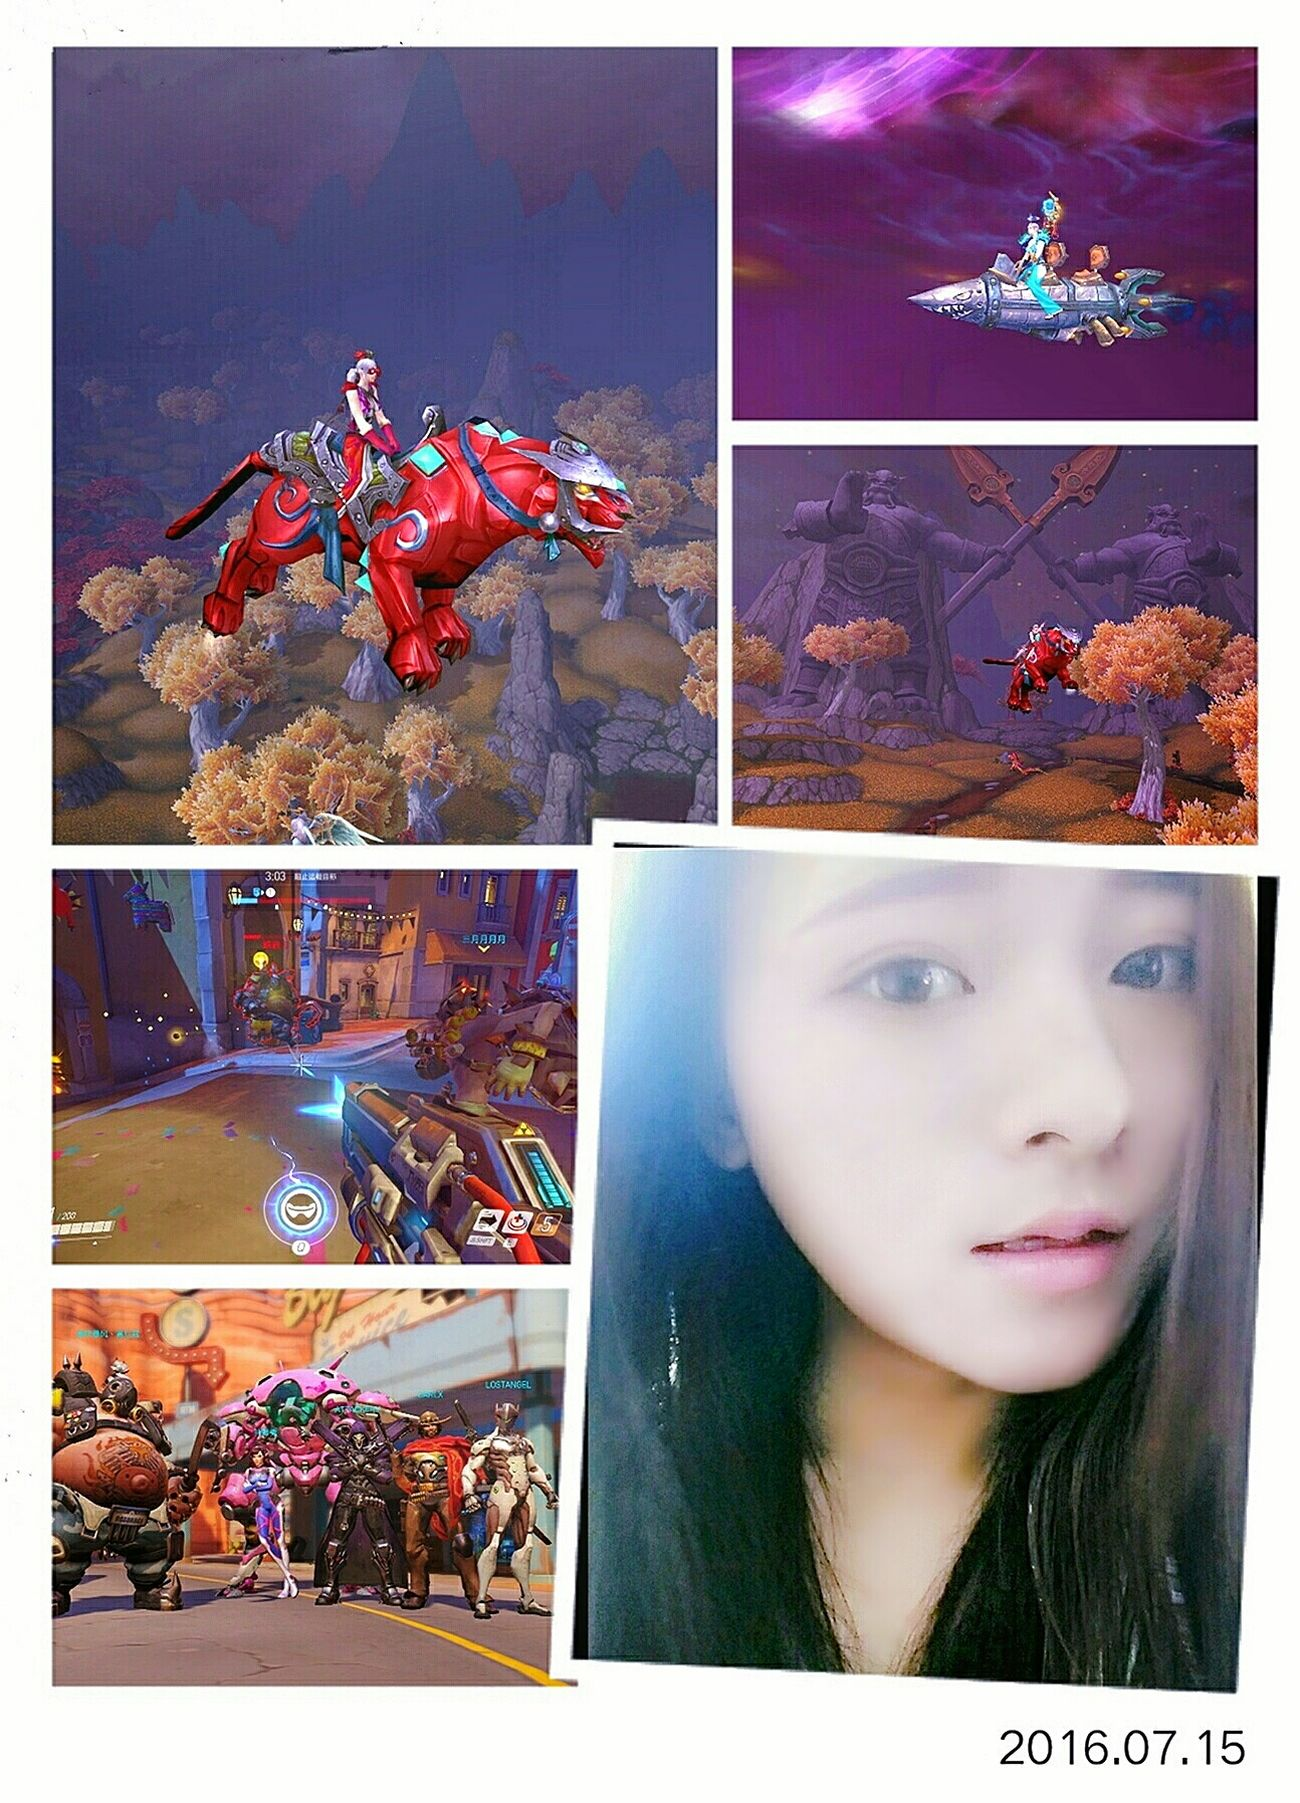 Game Time  Playing Games Game Games Onlinegame Rpg Rpggame RPGの世界 ゲーム Overwatch Warcraft Hi! That's Me Me Selfie Selfies Collage